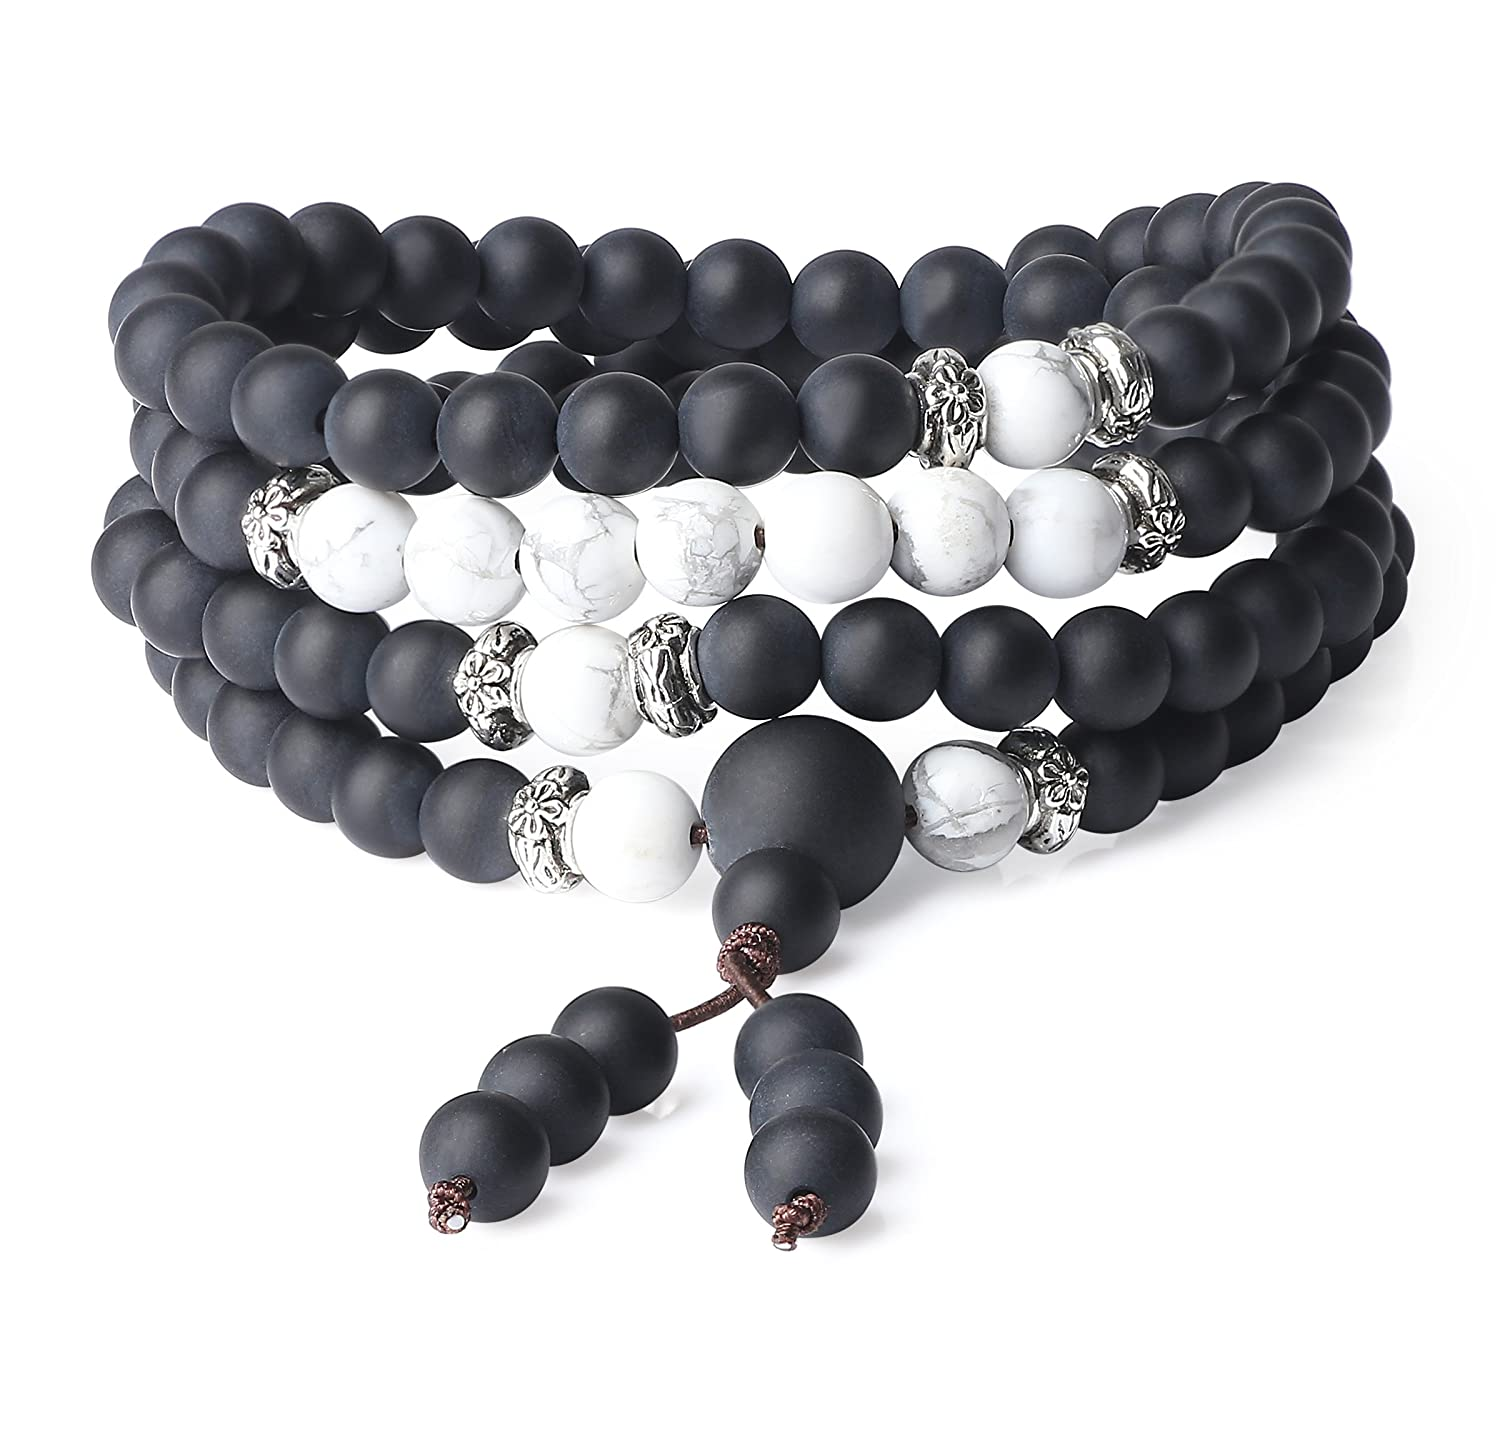 AmorWing 6mm Onyx Howlite Genuine Stones 108 Stone Beaded Mala Bracelet Necklace N393-1